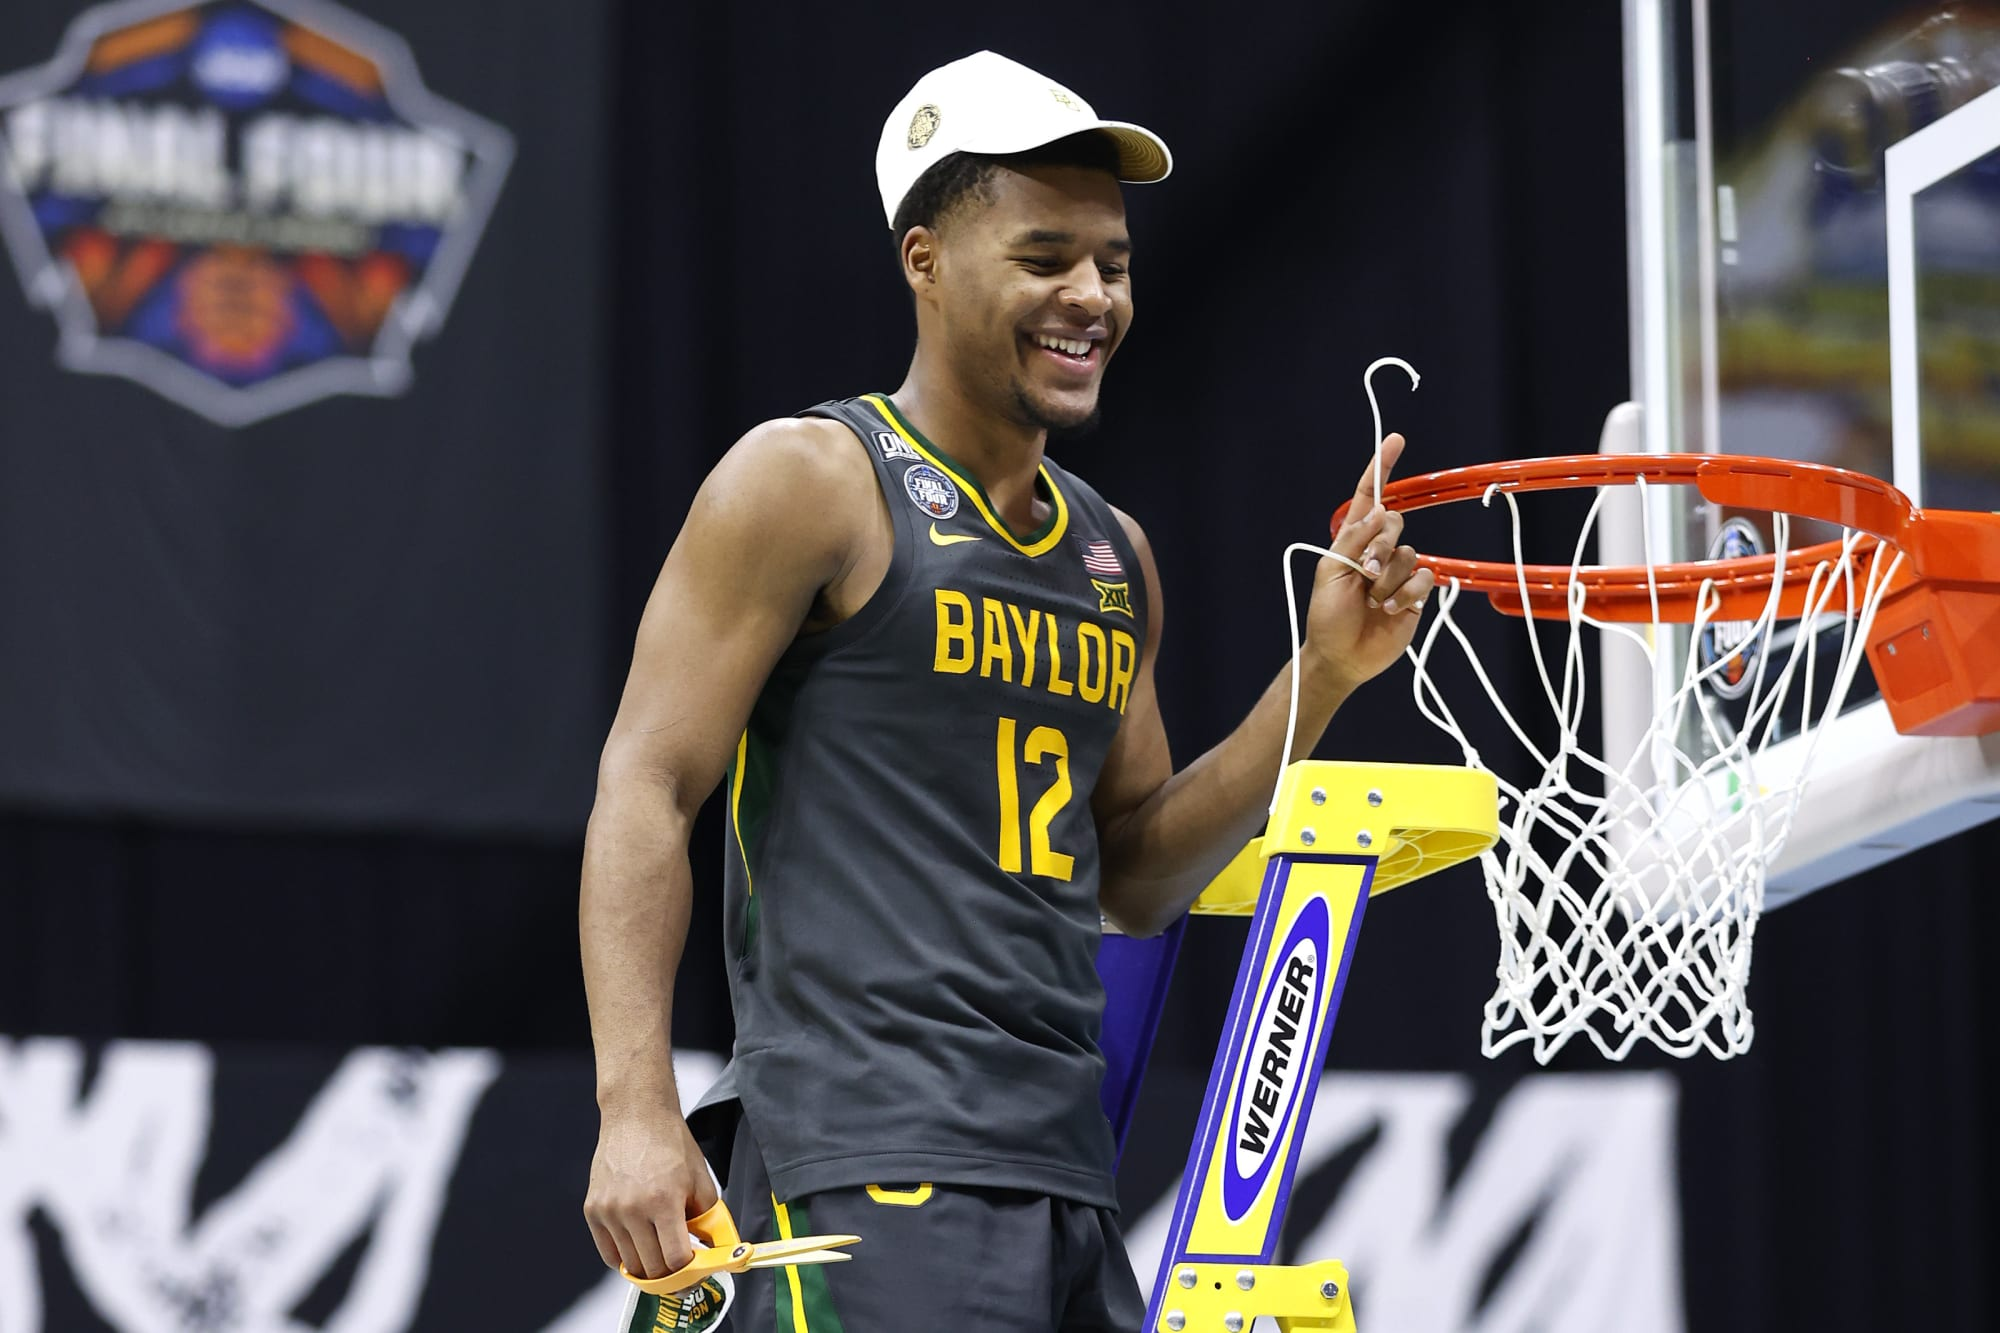 Jared Butler scouting report: Could he go from the national champs to the Toronto Raptors?